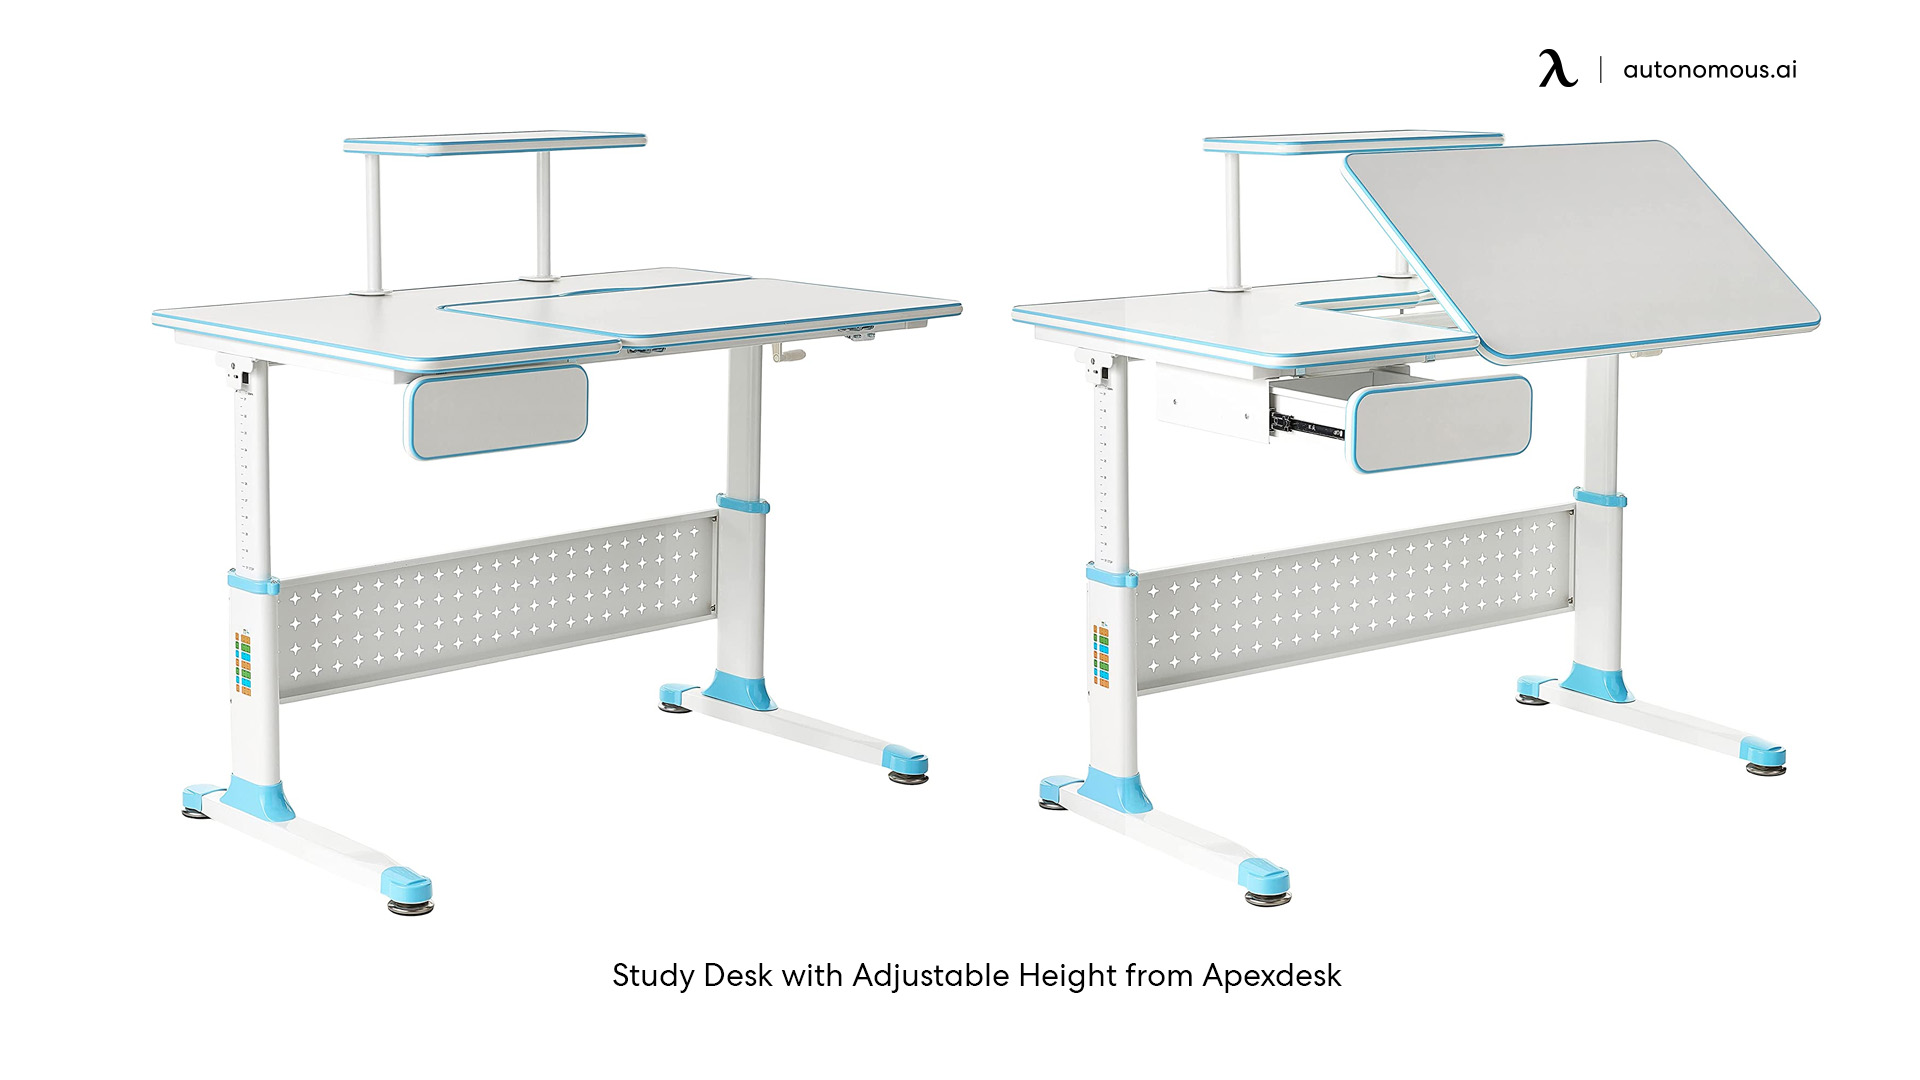 Study Desk with Adjustable Height from Apexdesk